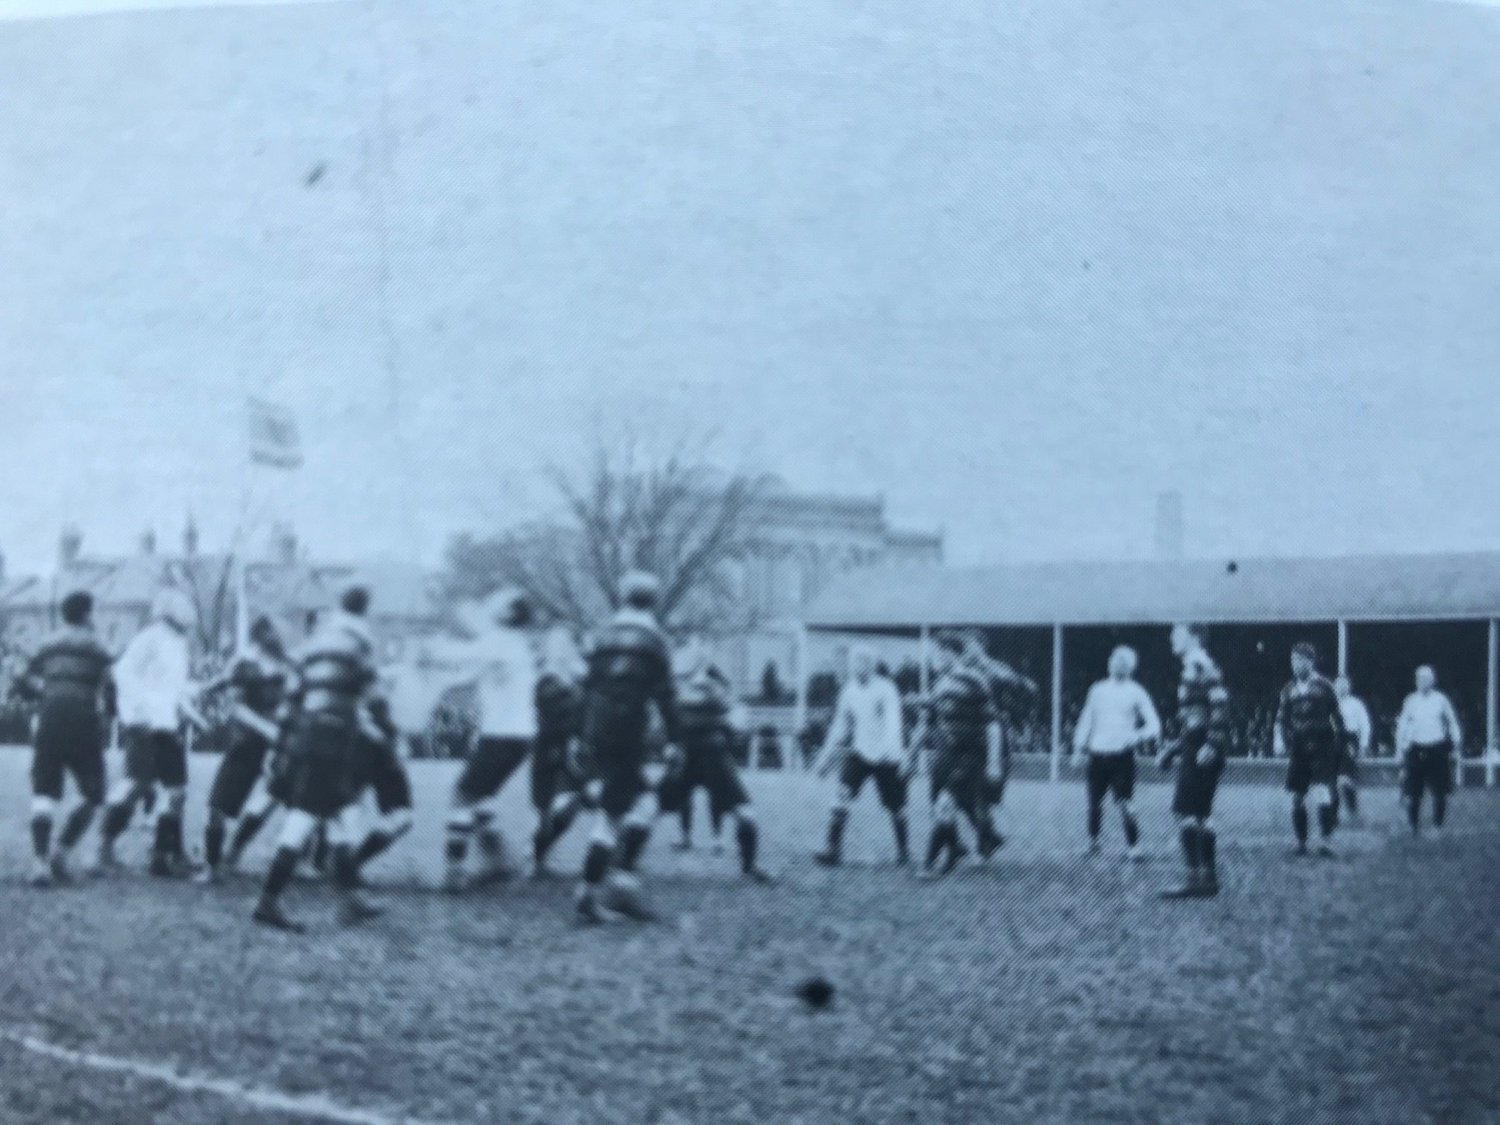 Tigers entertain Northampton during the 1908/09 season